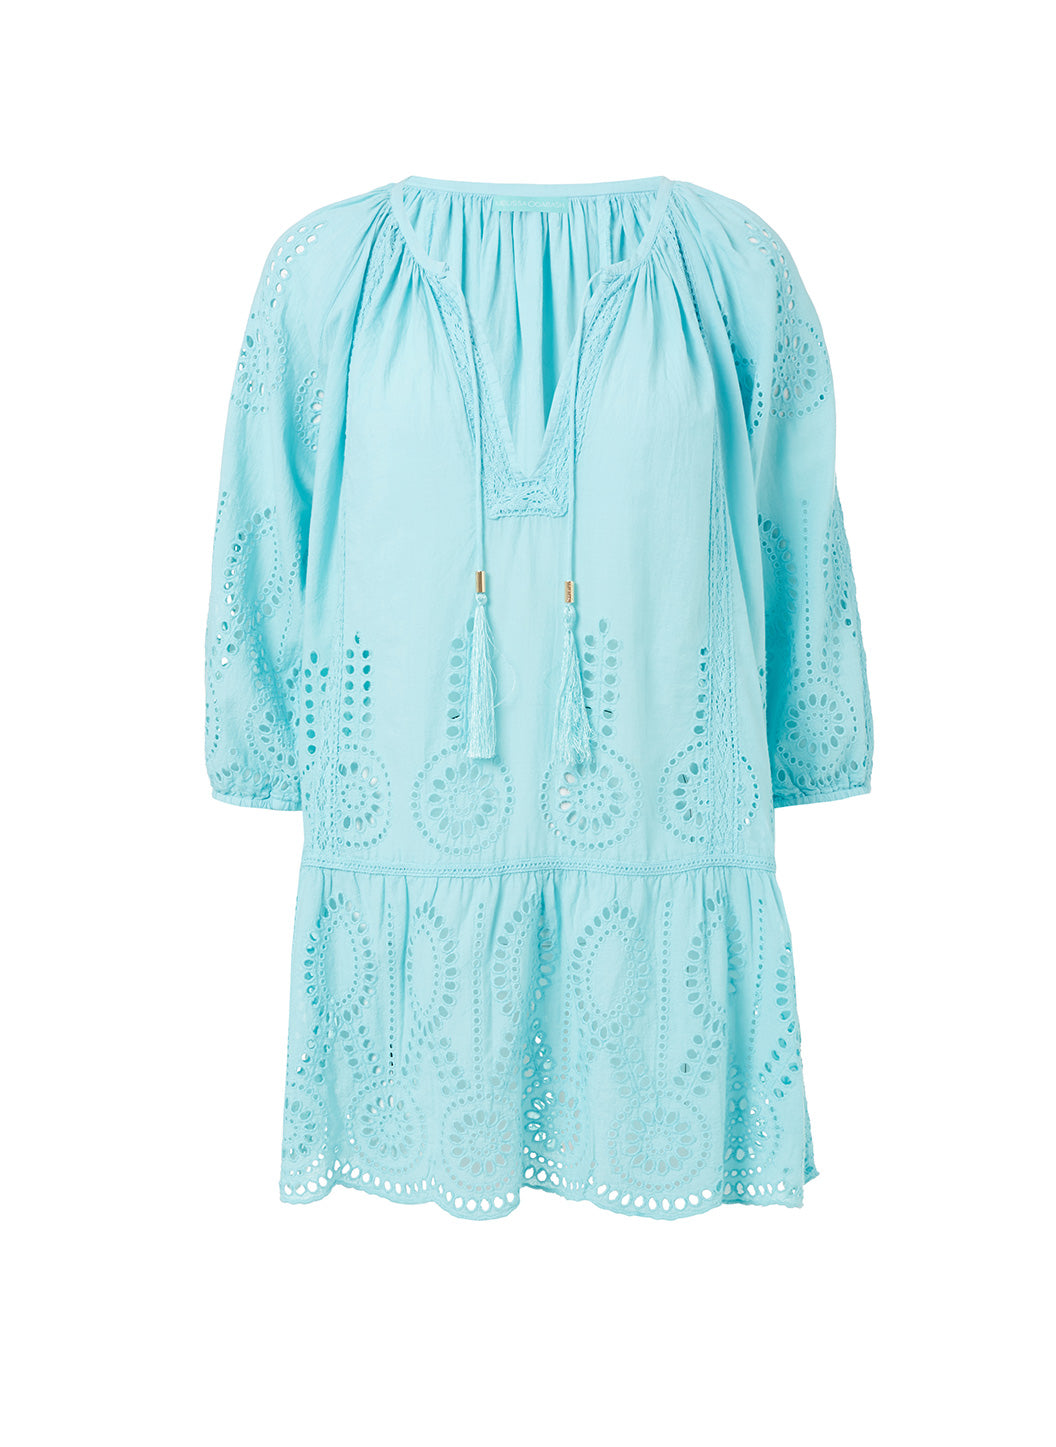 Ashley Sky Embroidered 3/4 Sleeve Short Cover-Up